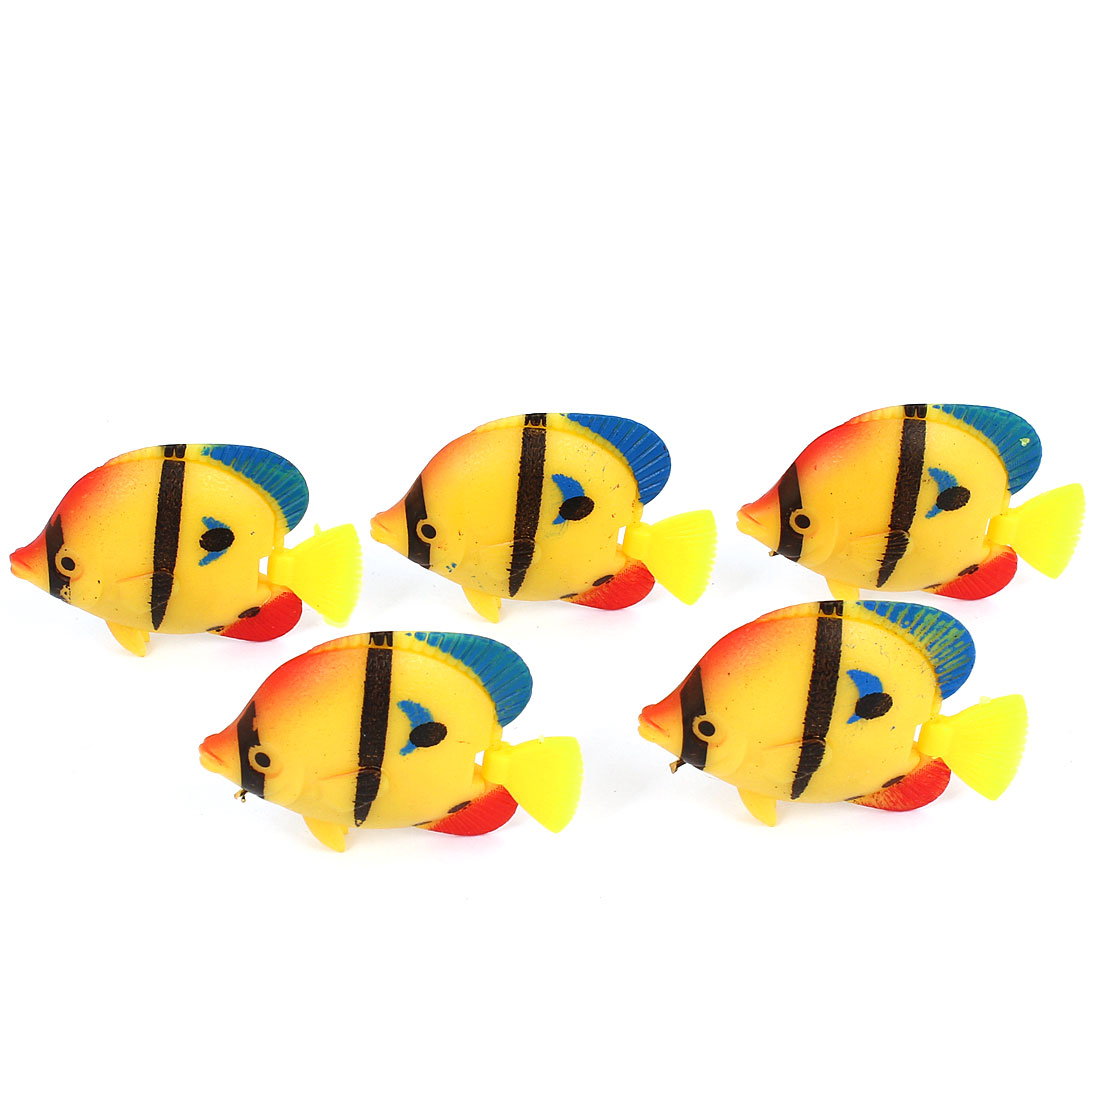 5 Pcs Aquarium Manmade Wiggly Tail Swimming Fishes Decor Yellow Black